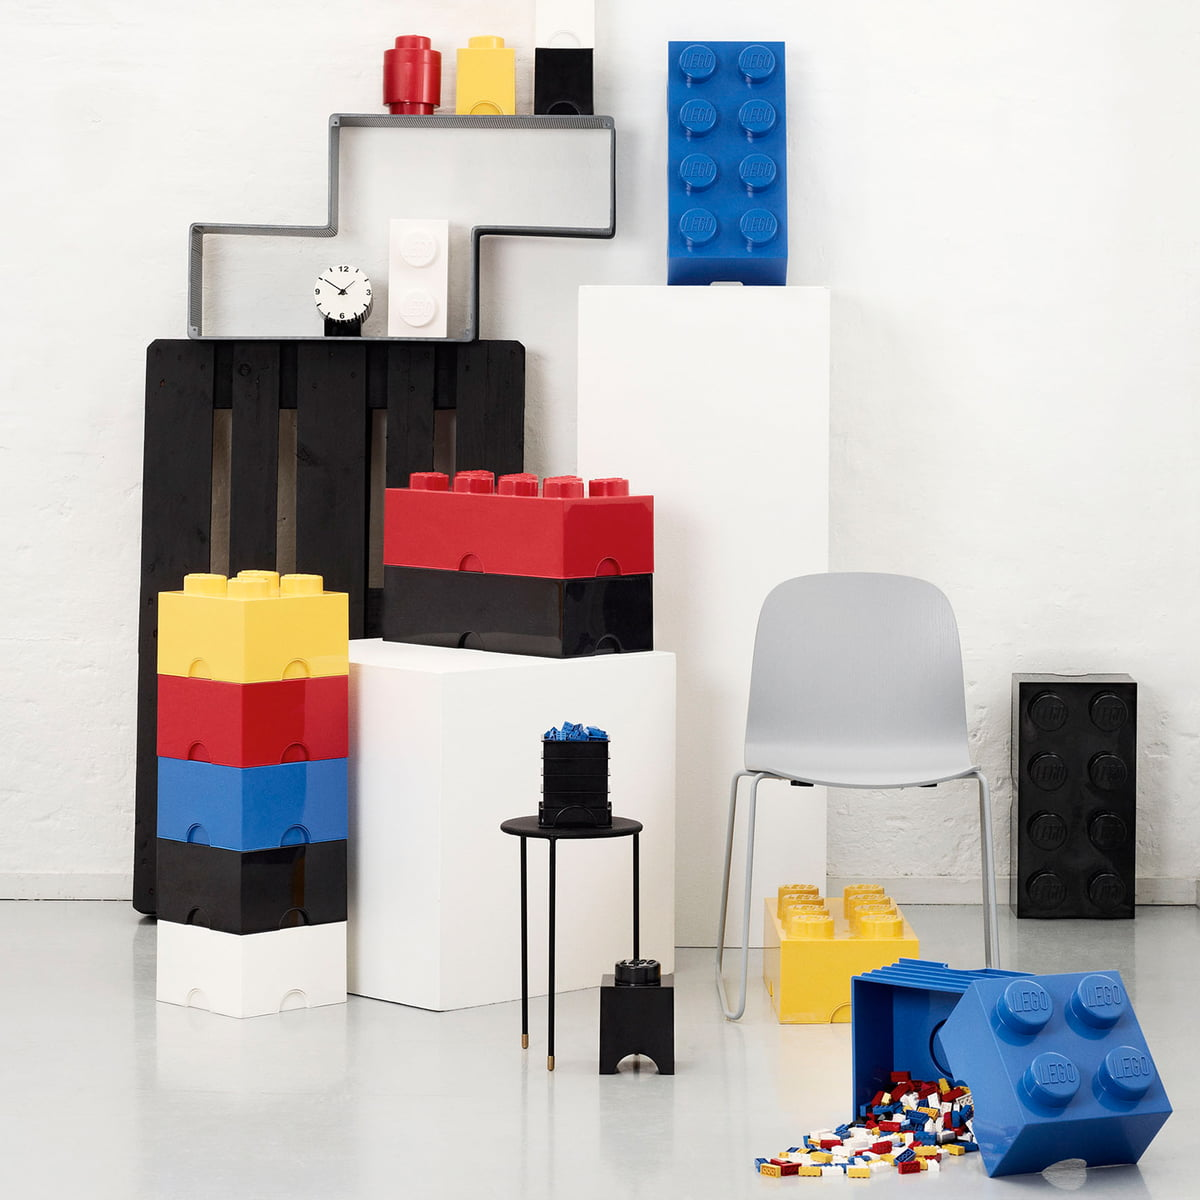 Storage brick 8 by lego in the home design shop for Interior design in a box